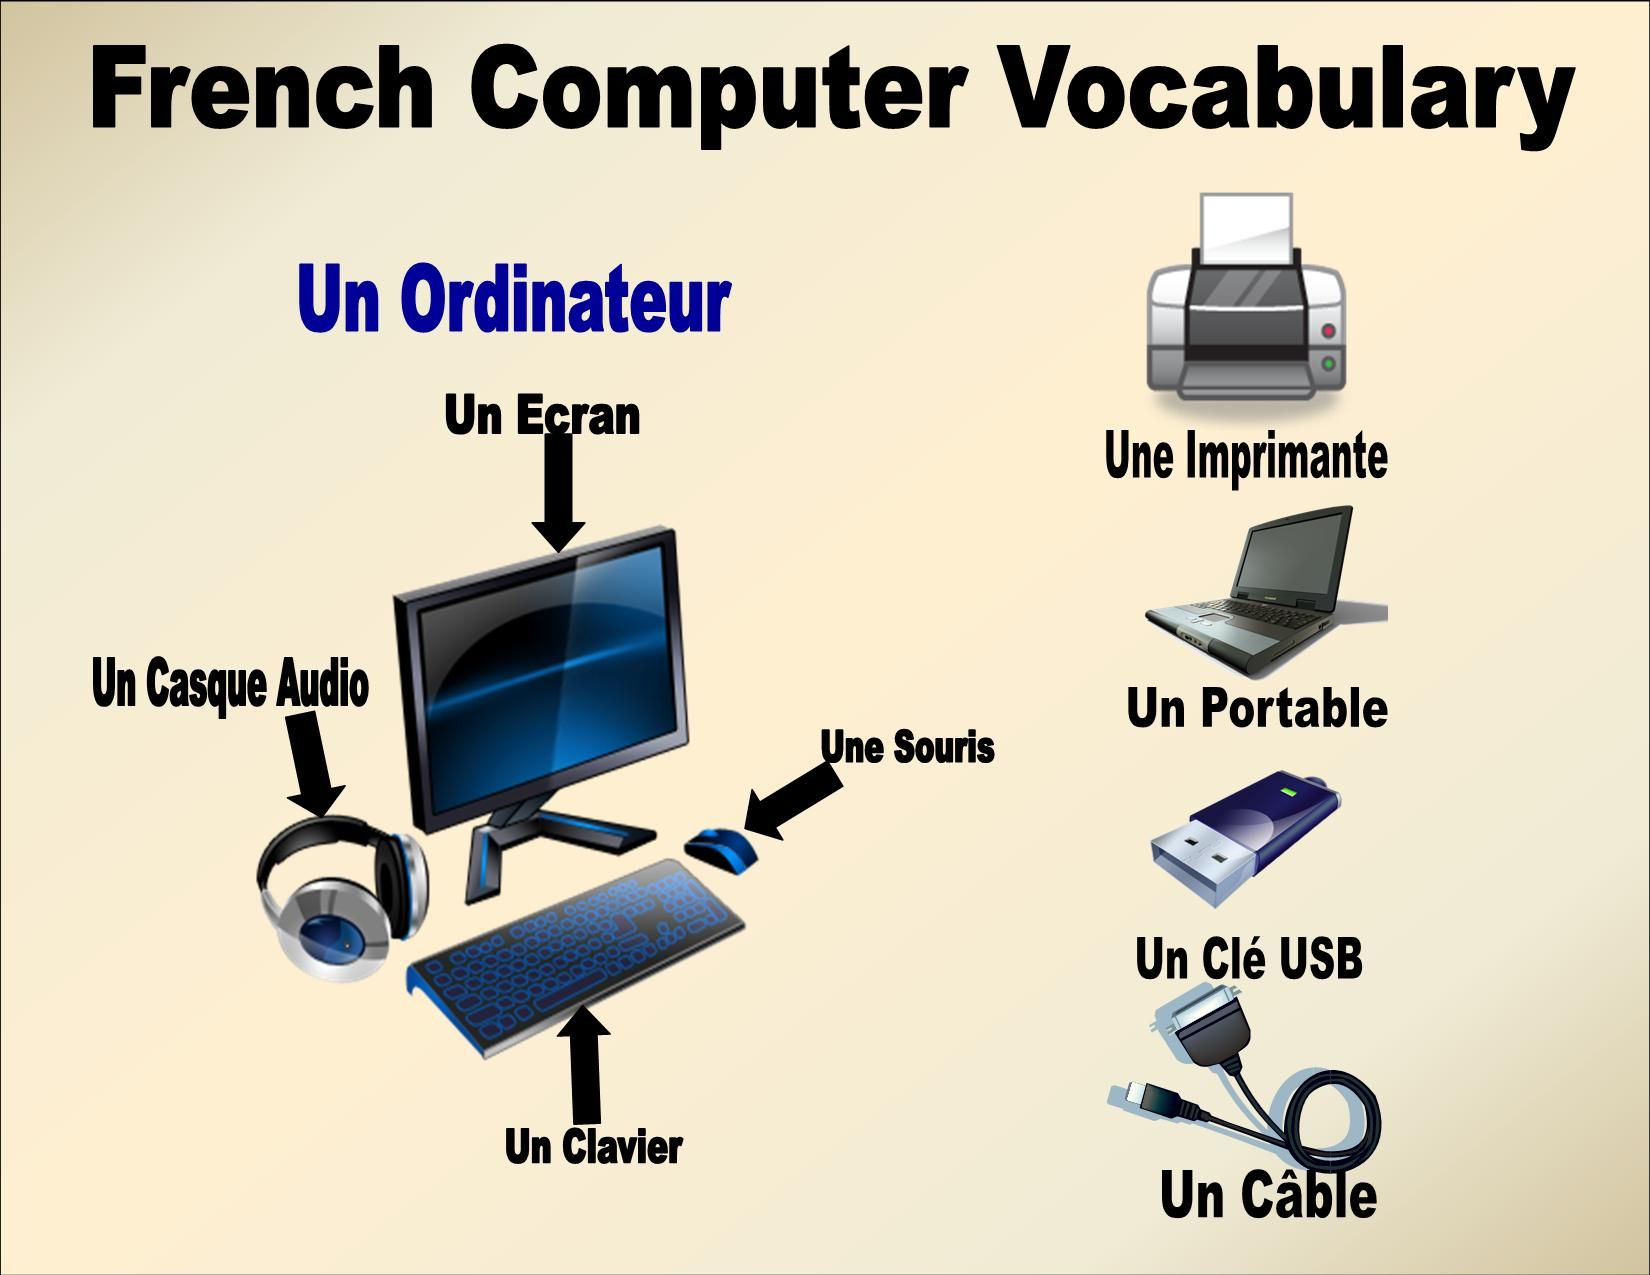 Make sure you know your French Computer Vocabulary words! | French ...